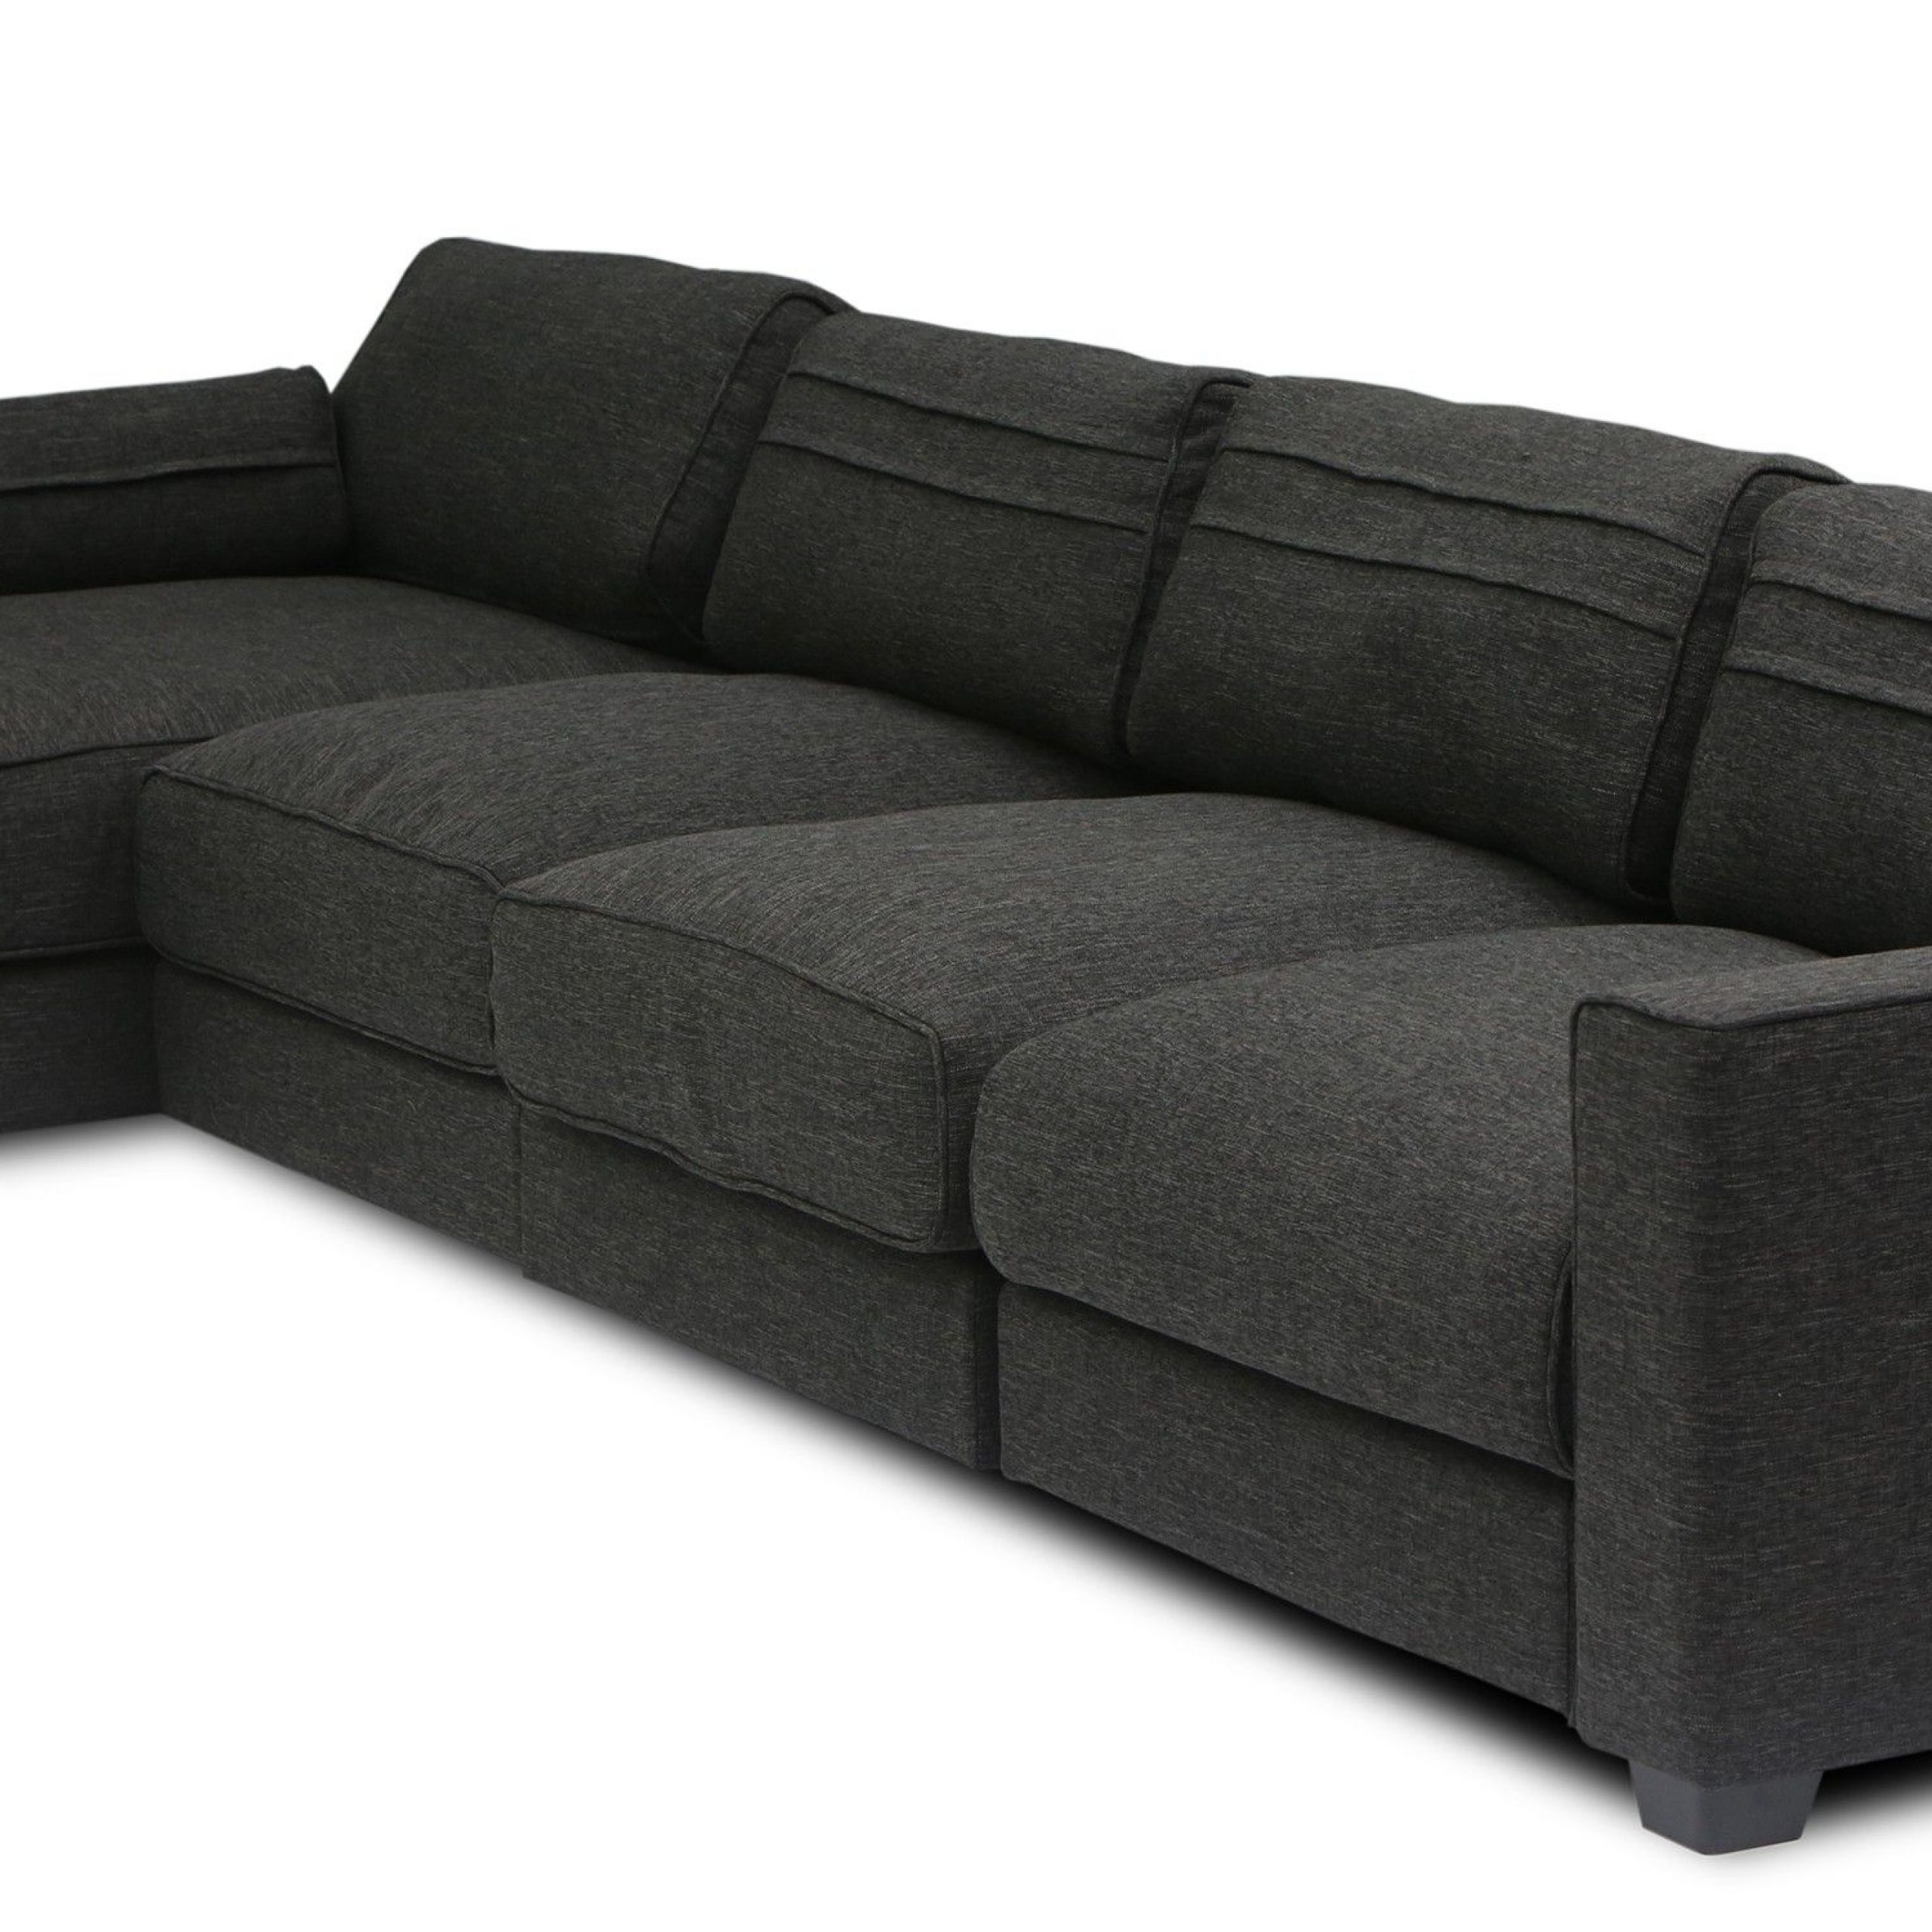 Popular Alani Mid Century Modern Sectional Sofas With Chaise With Regard To Vani Modular 3 Seat Right Sectional With Chaise (View 11 of 20)